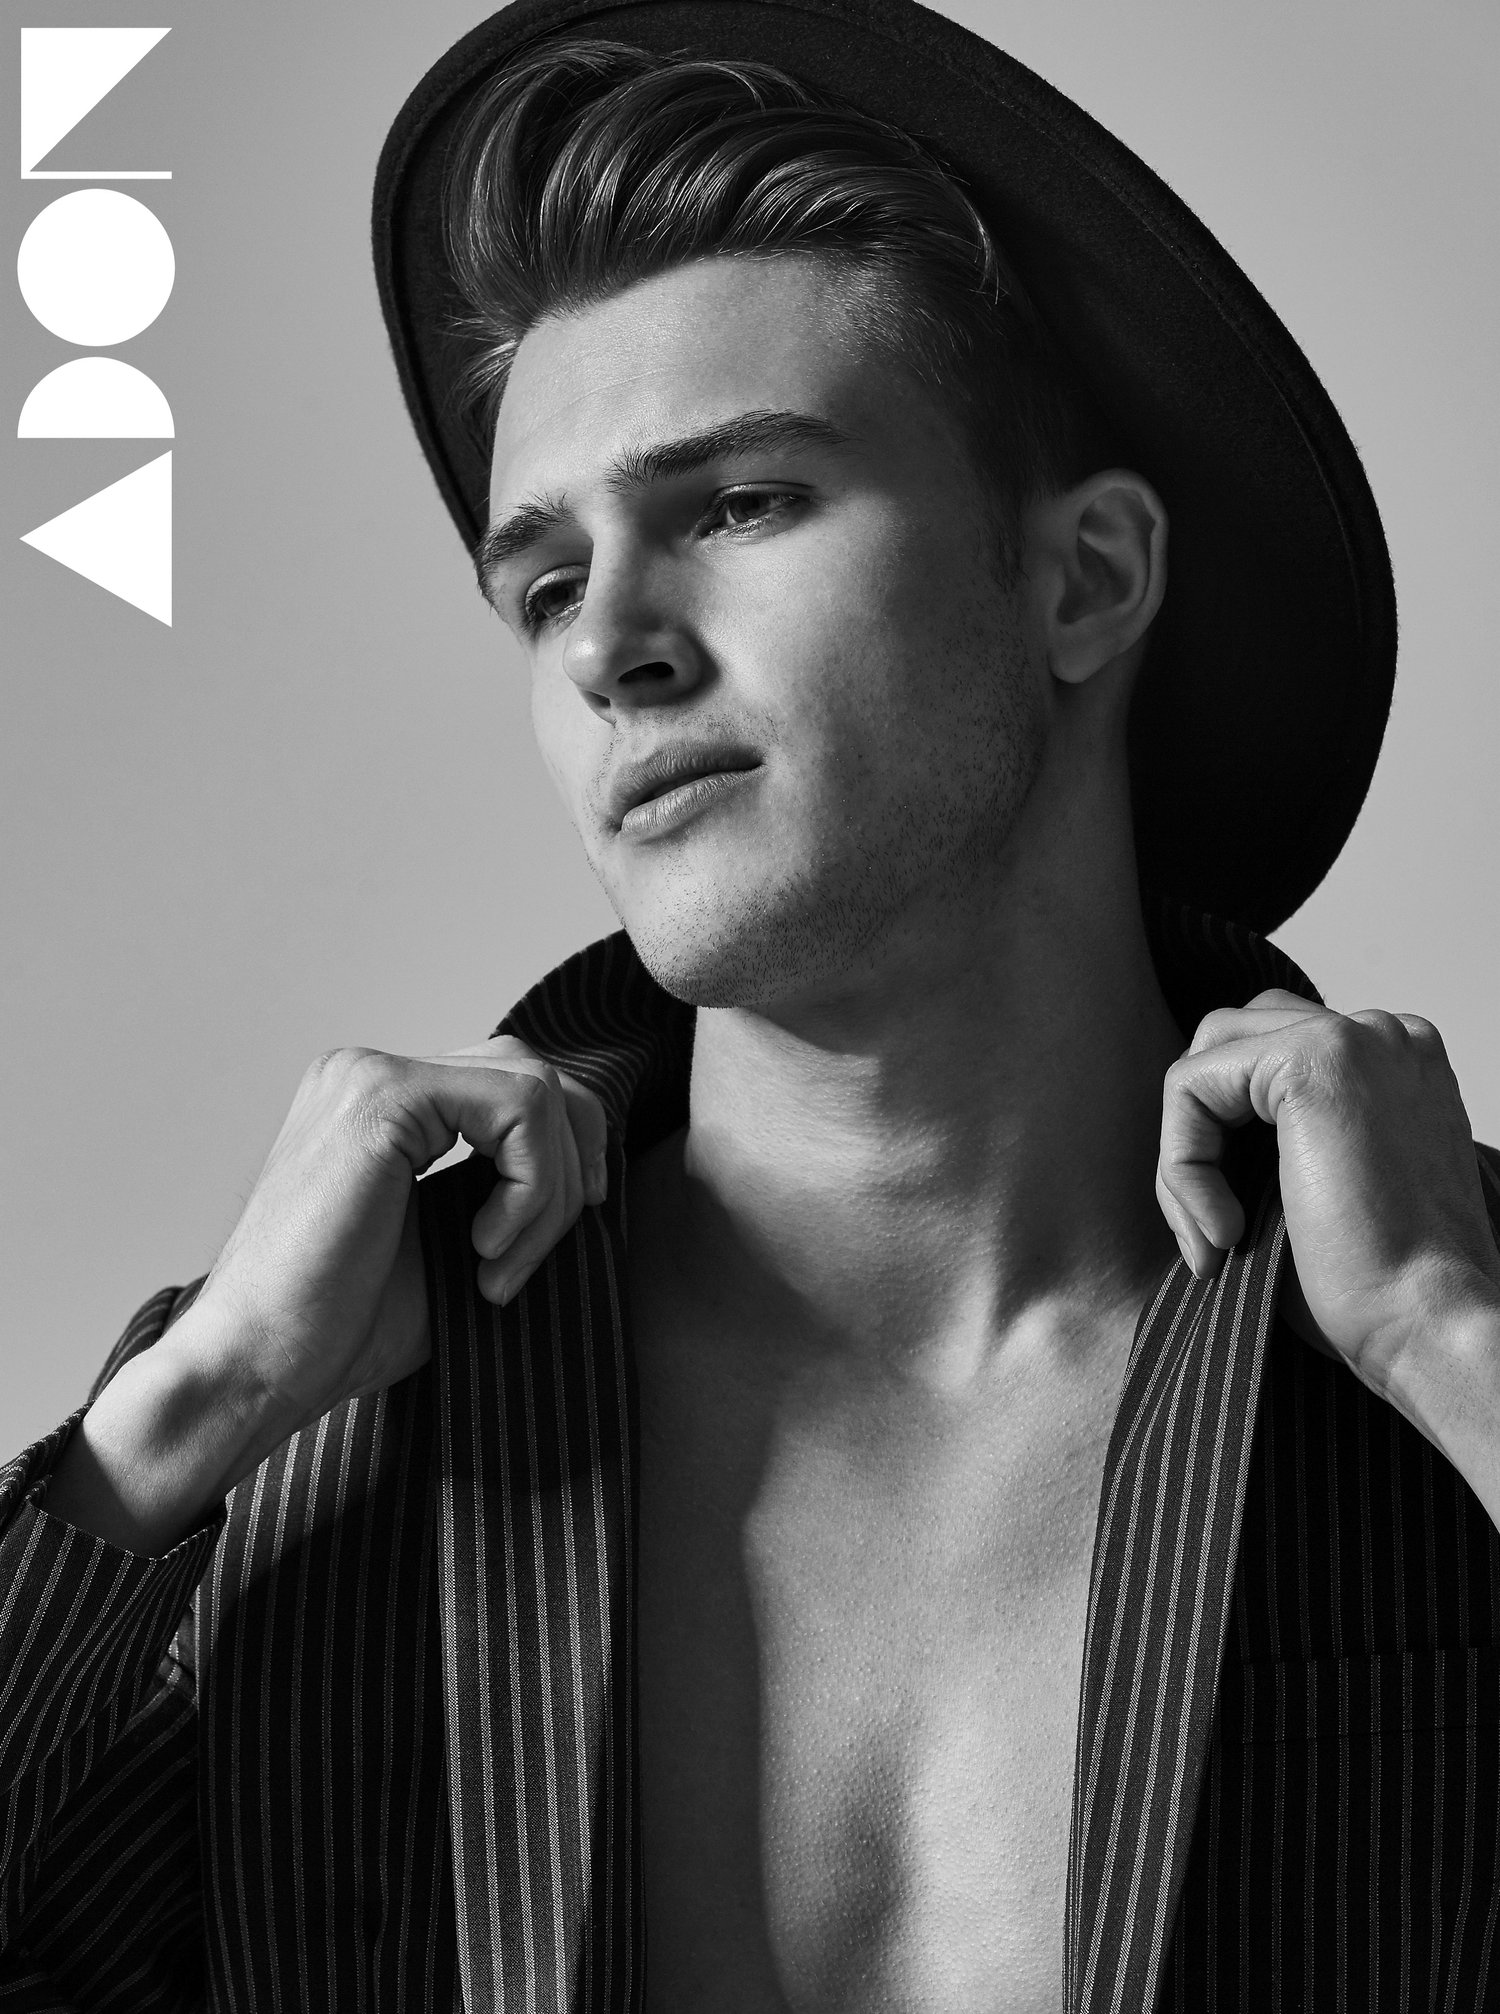 Adon Exclusive: Models PHILIPP SRODA & NICLAS GONZALES By PAUL FITZGERALD